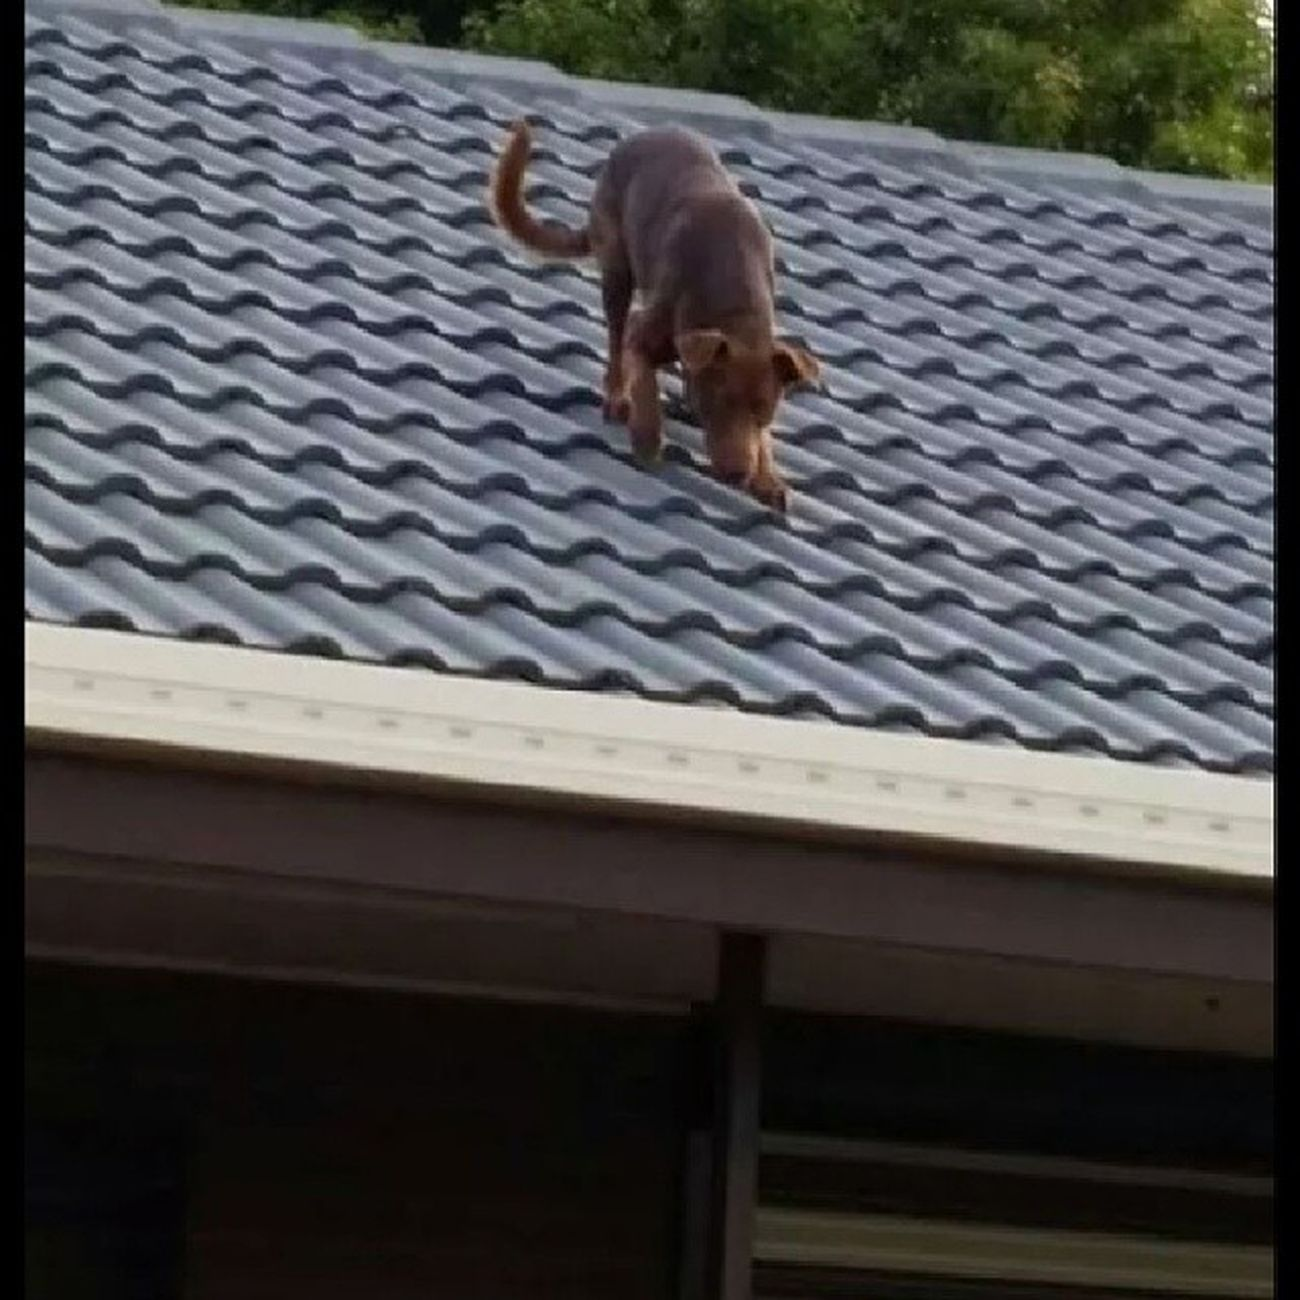 I had to share this! Alex's dog Dex has always been a terror, destroying things in the backyard, escaping through the gate and annoying the neighbors. But this is a whole new level of shitcuntary. Yes.. somehow he managed to get on the roof!! Superdog Ninjadog Dogontheroof WTF wellillbedamned